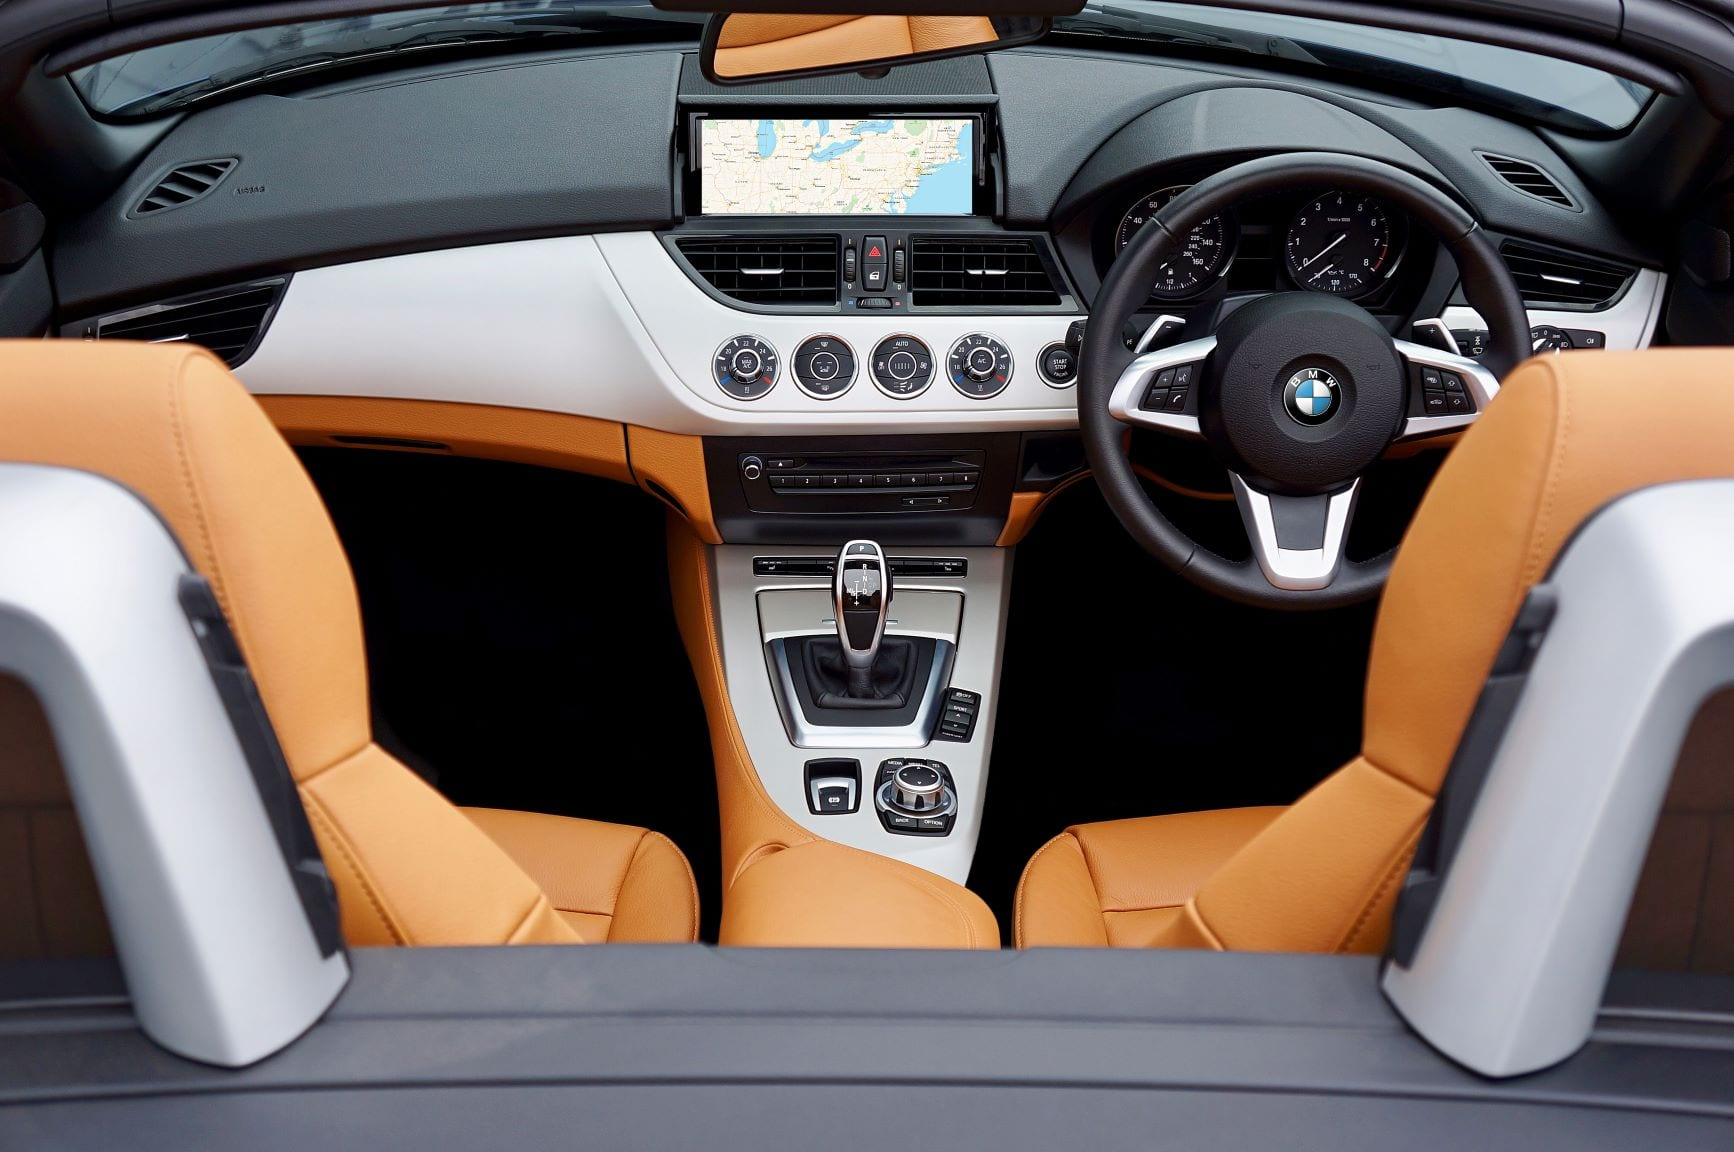 An interior of a BMW convertible